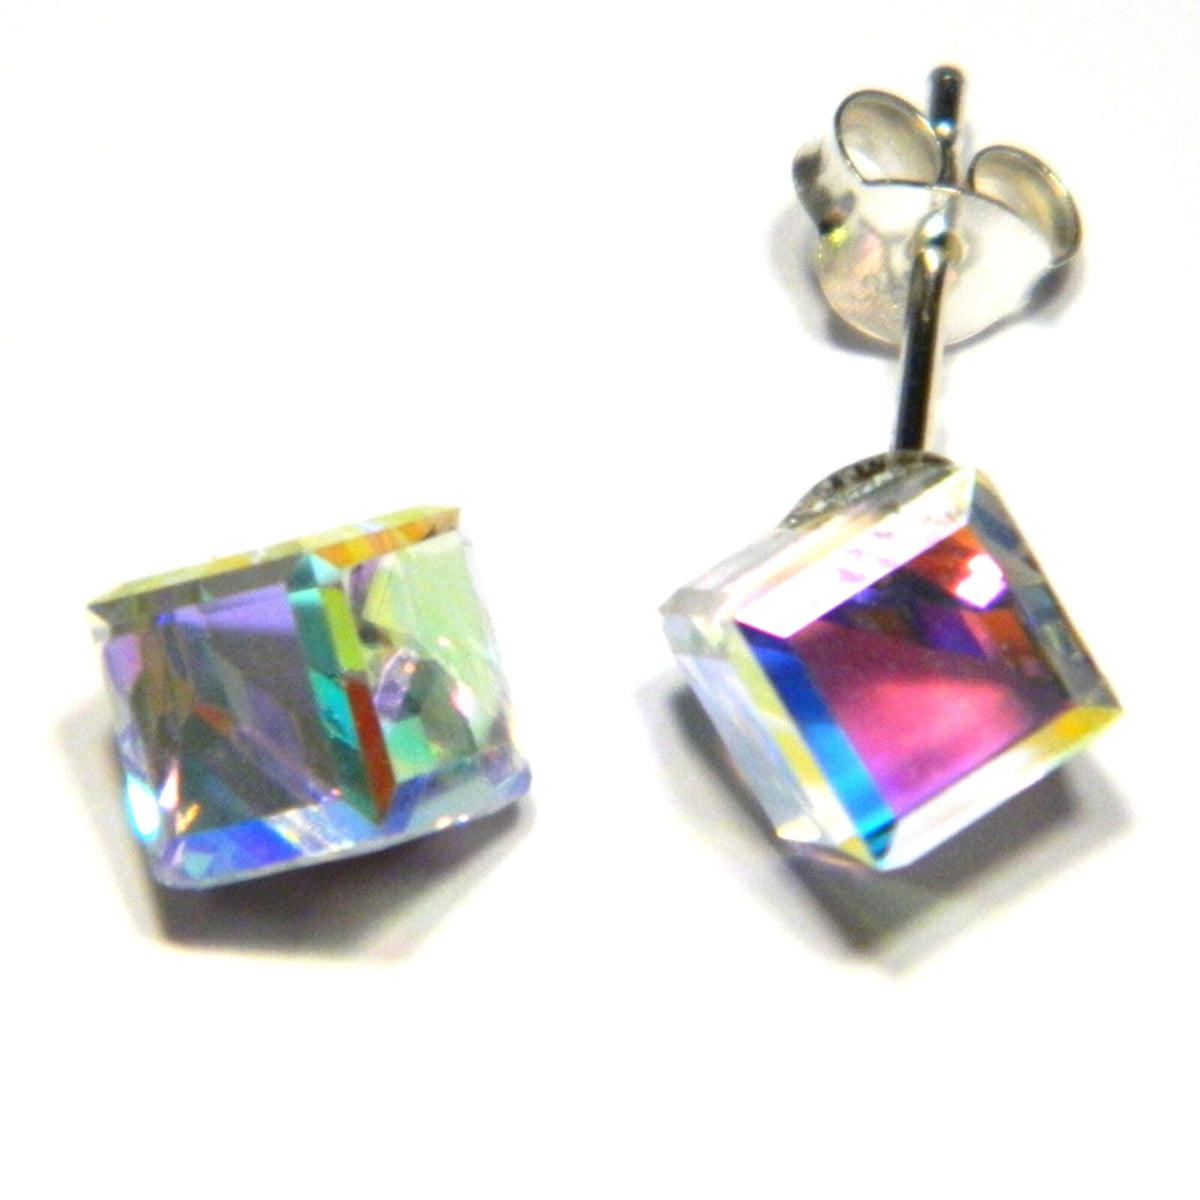 6 mm cube aurora borealis crystal stud earrings in sterling silver